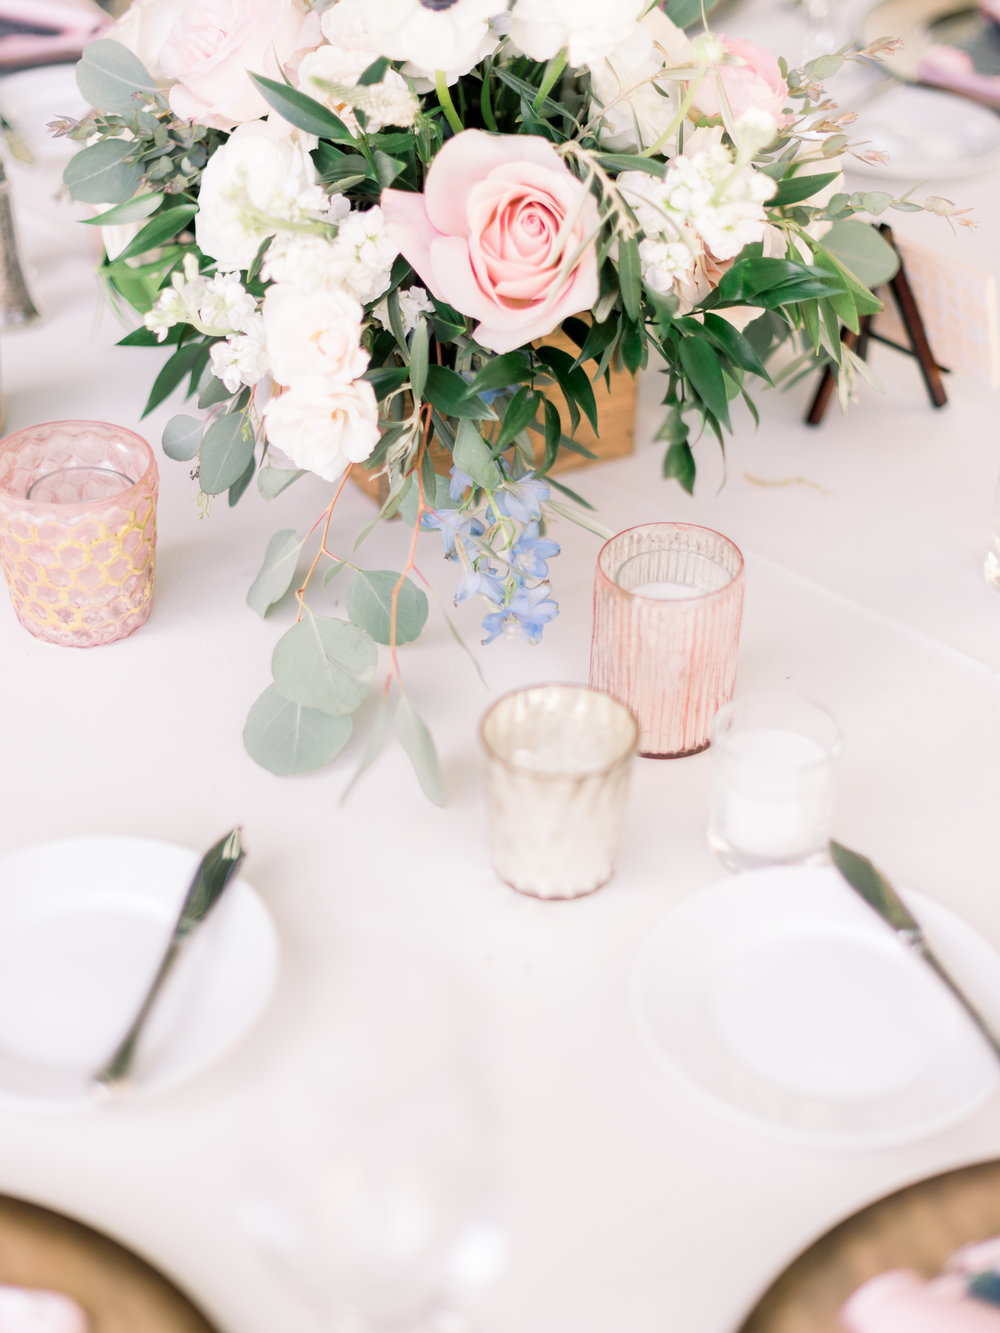 wedding-reception-table-with-pastel-decor.jpg